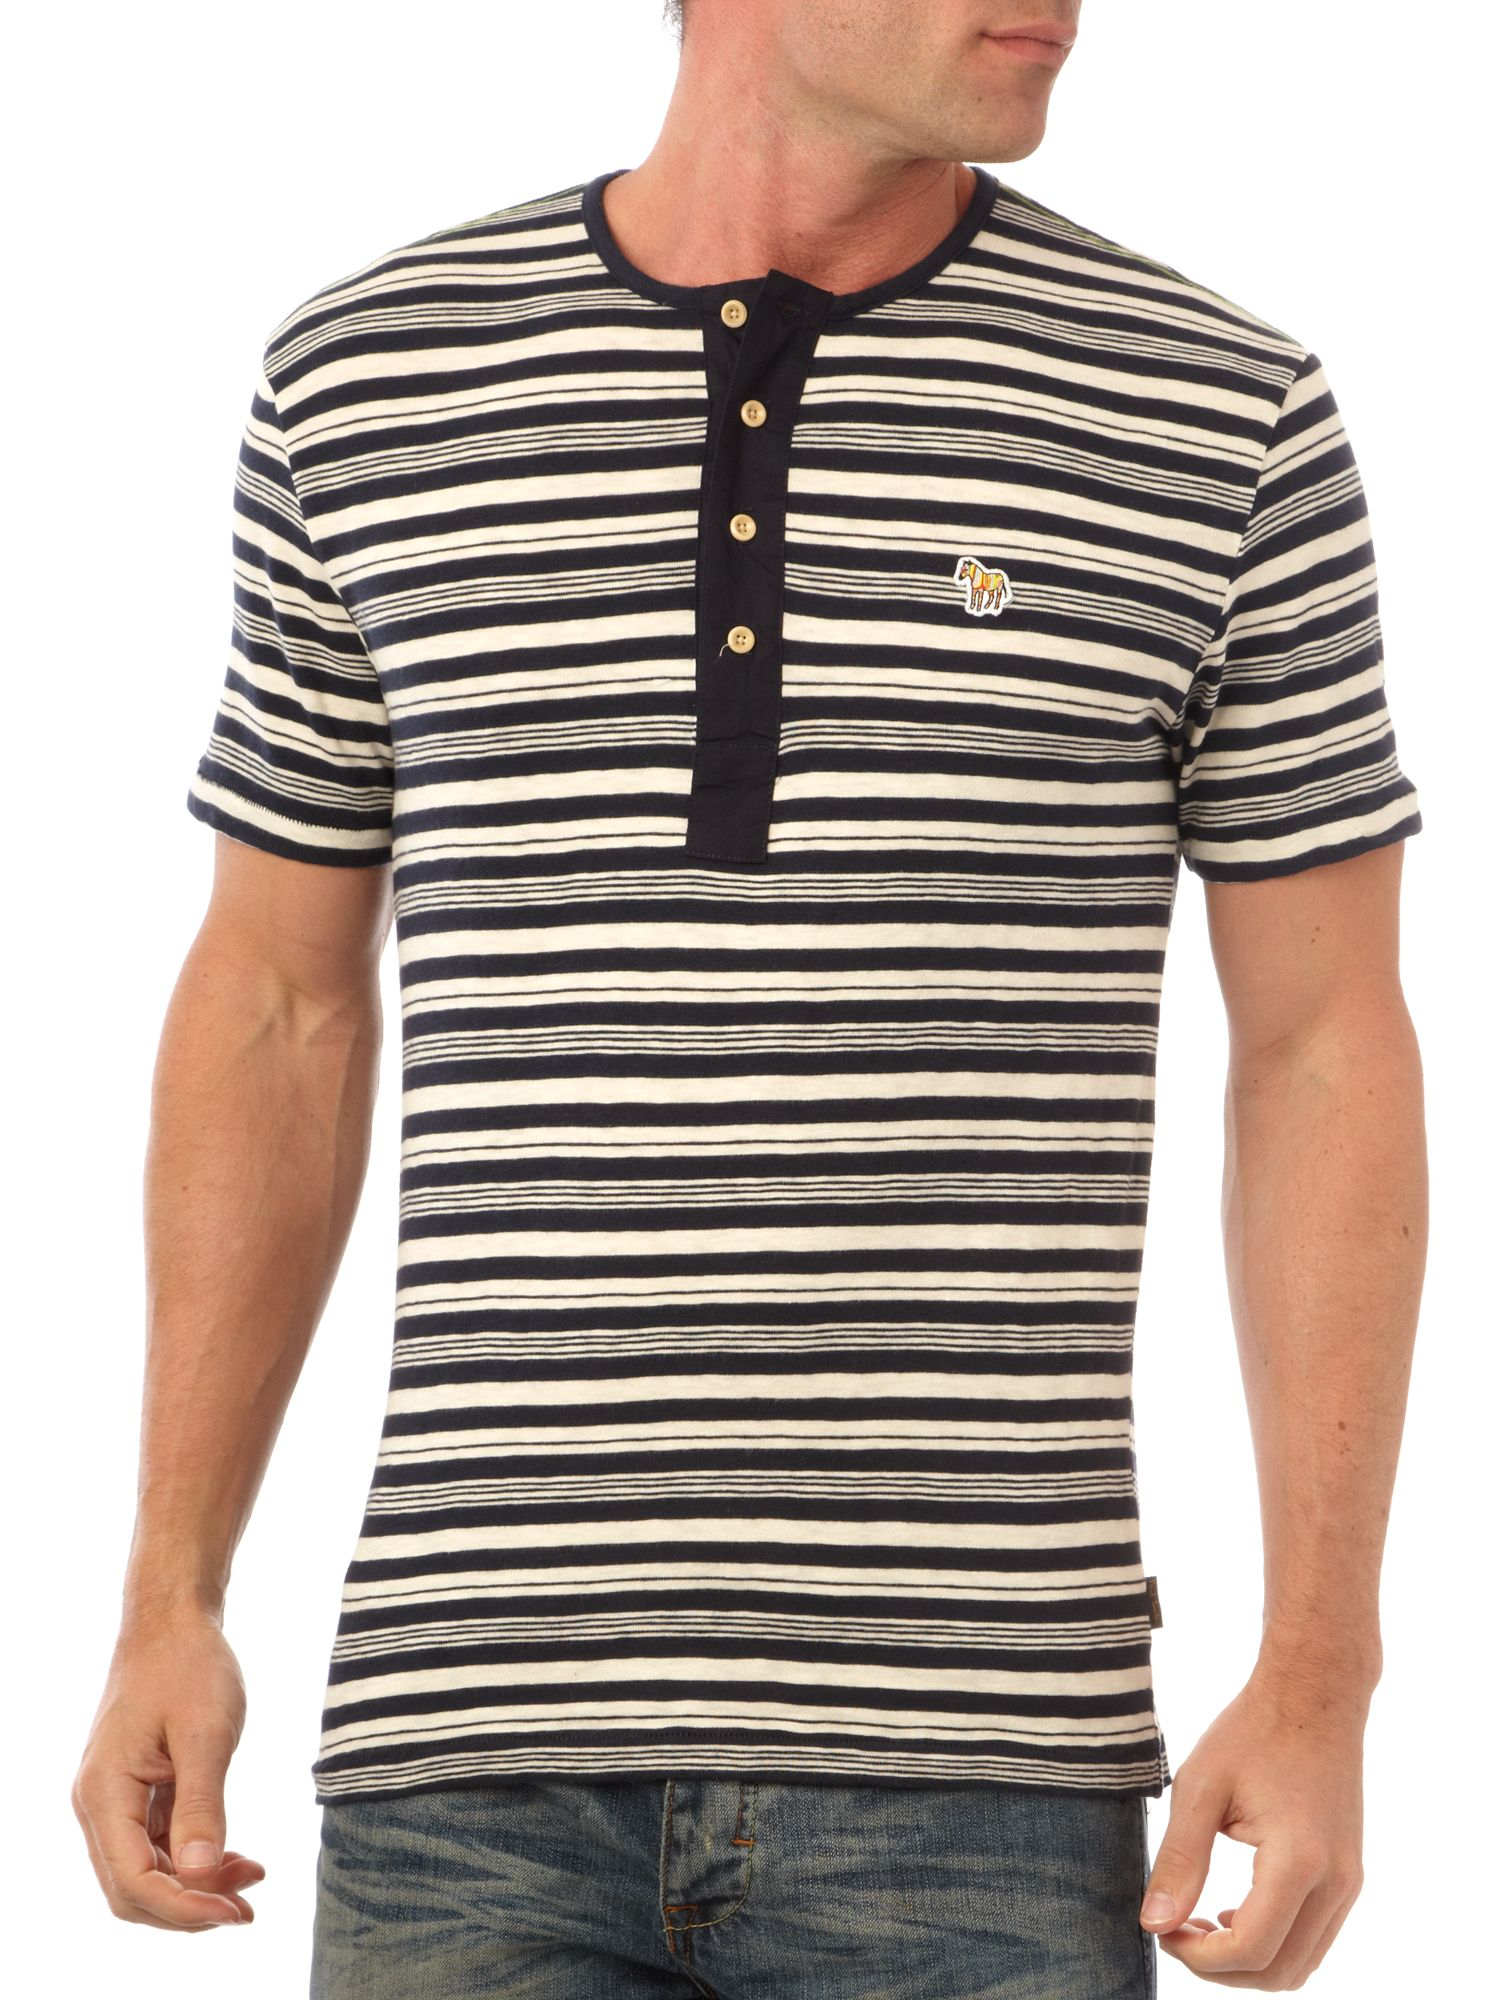 Paul Smith Jeans Henley stripe t-shirt product image